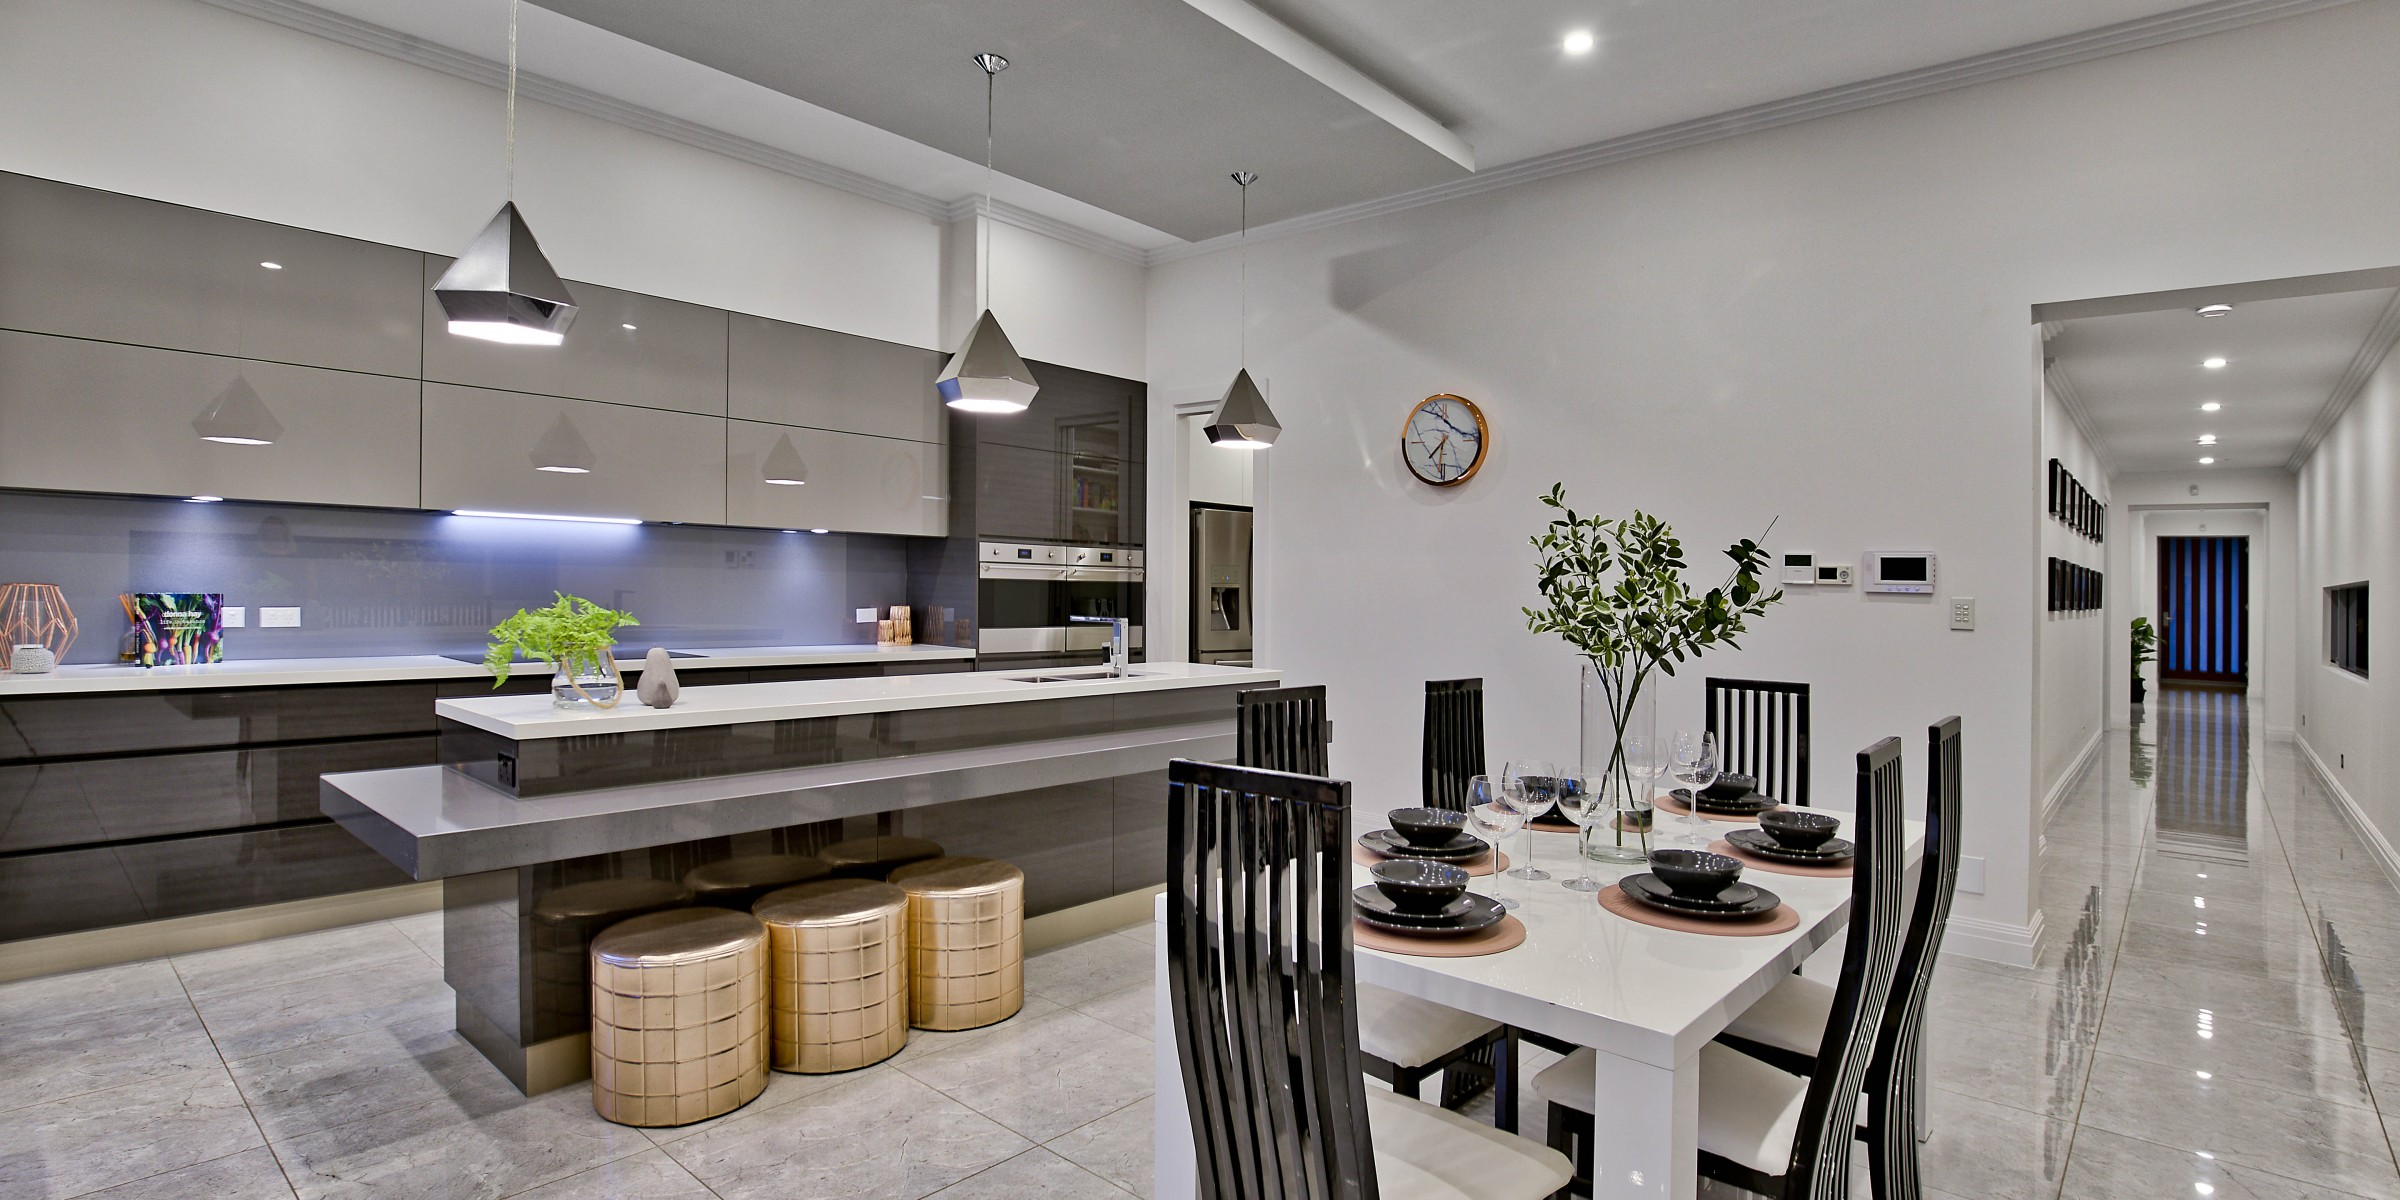 Hill Street Residence Henley Beach kitchen and dining